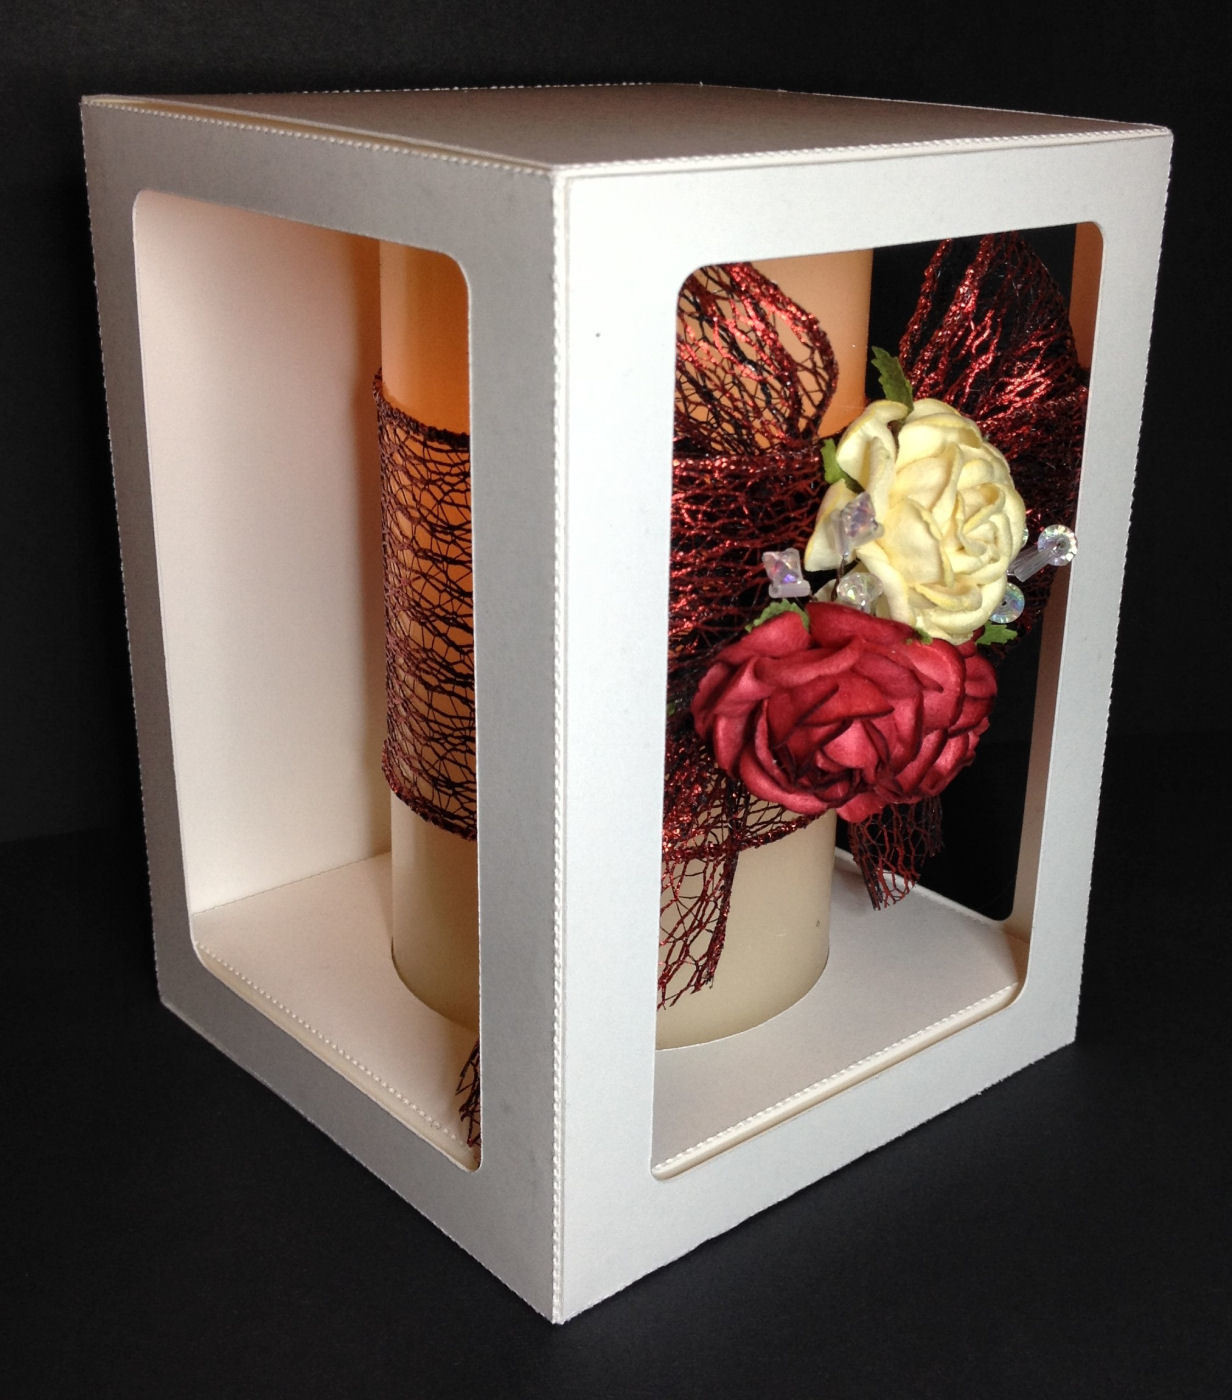 Box 4.5 x 4.5 x 7 inches ideal for pillar candles